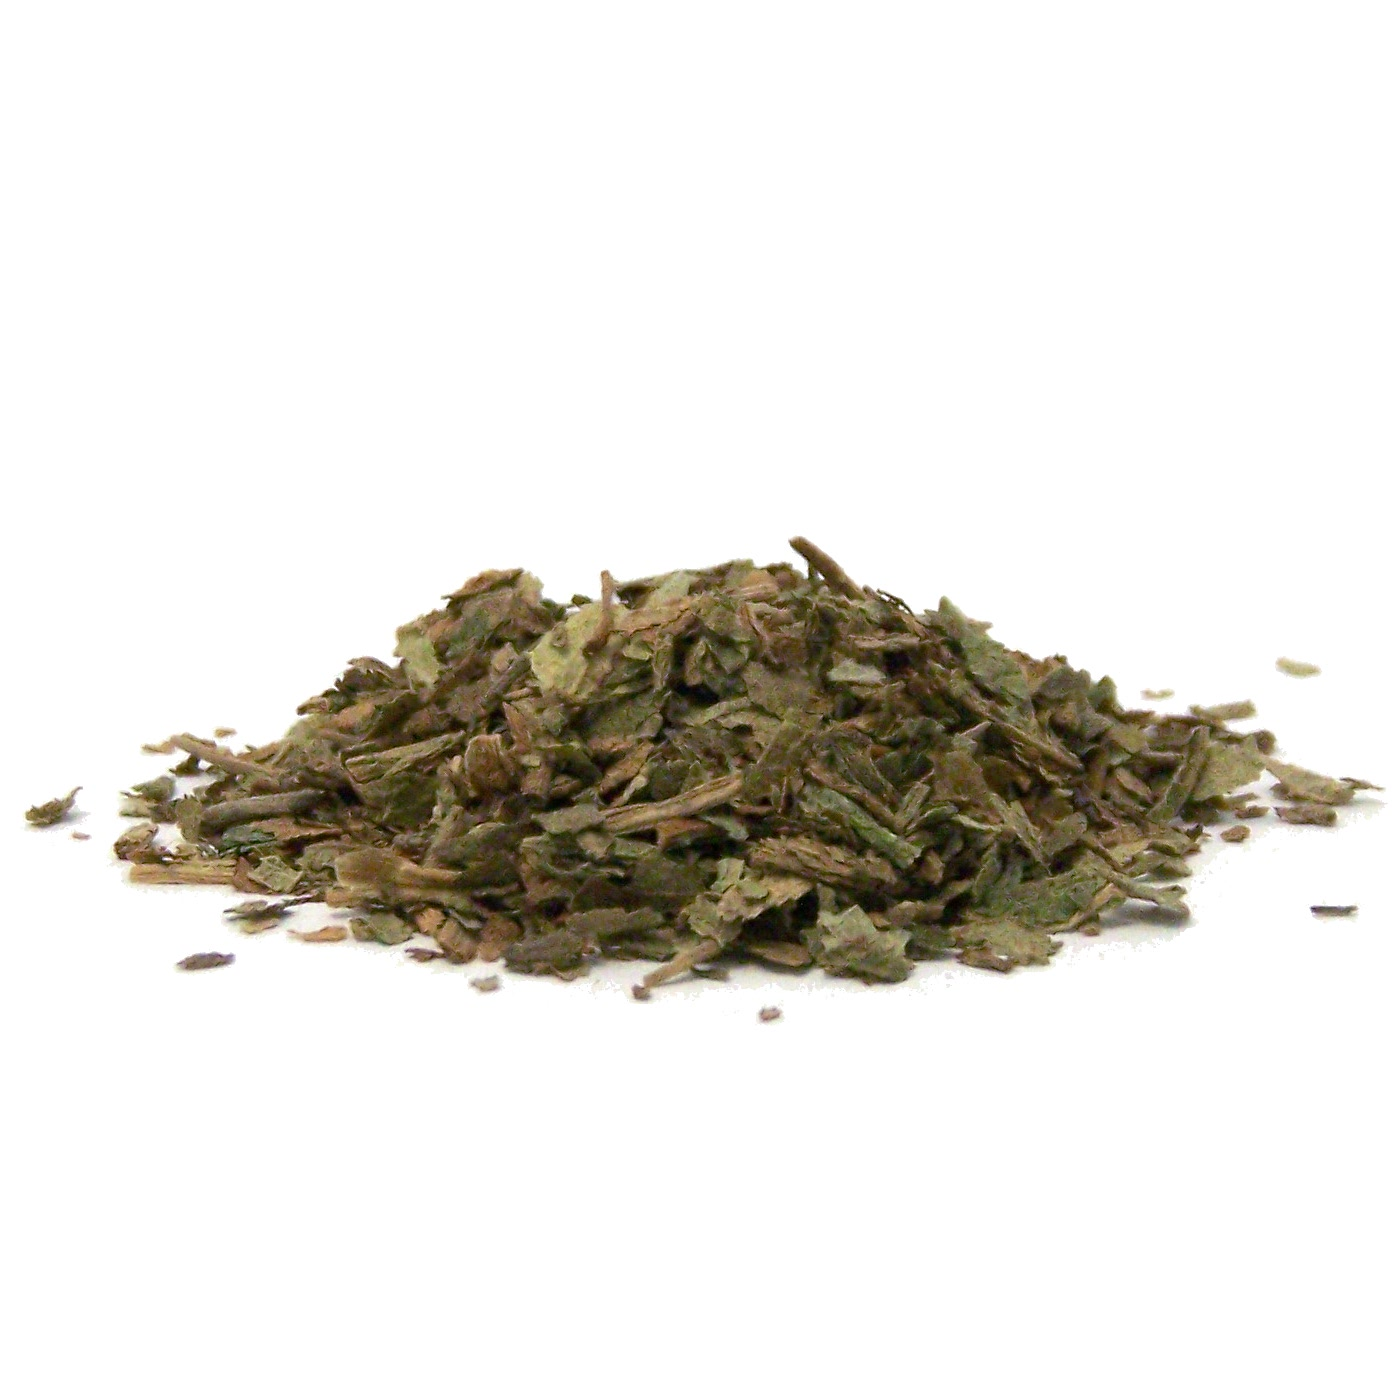 Nature Boy Whole Herbs Online Store